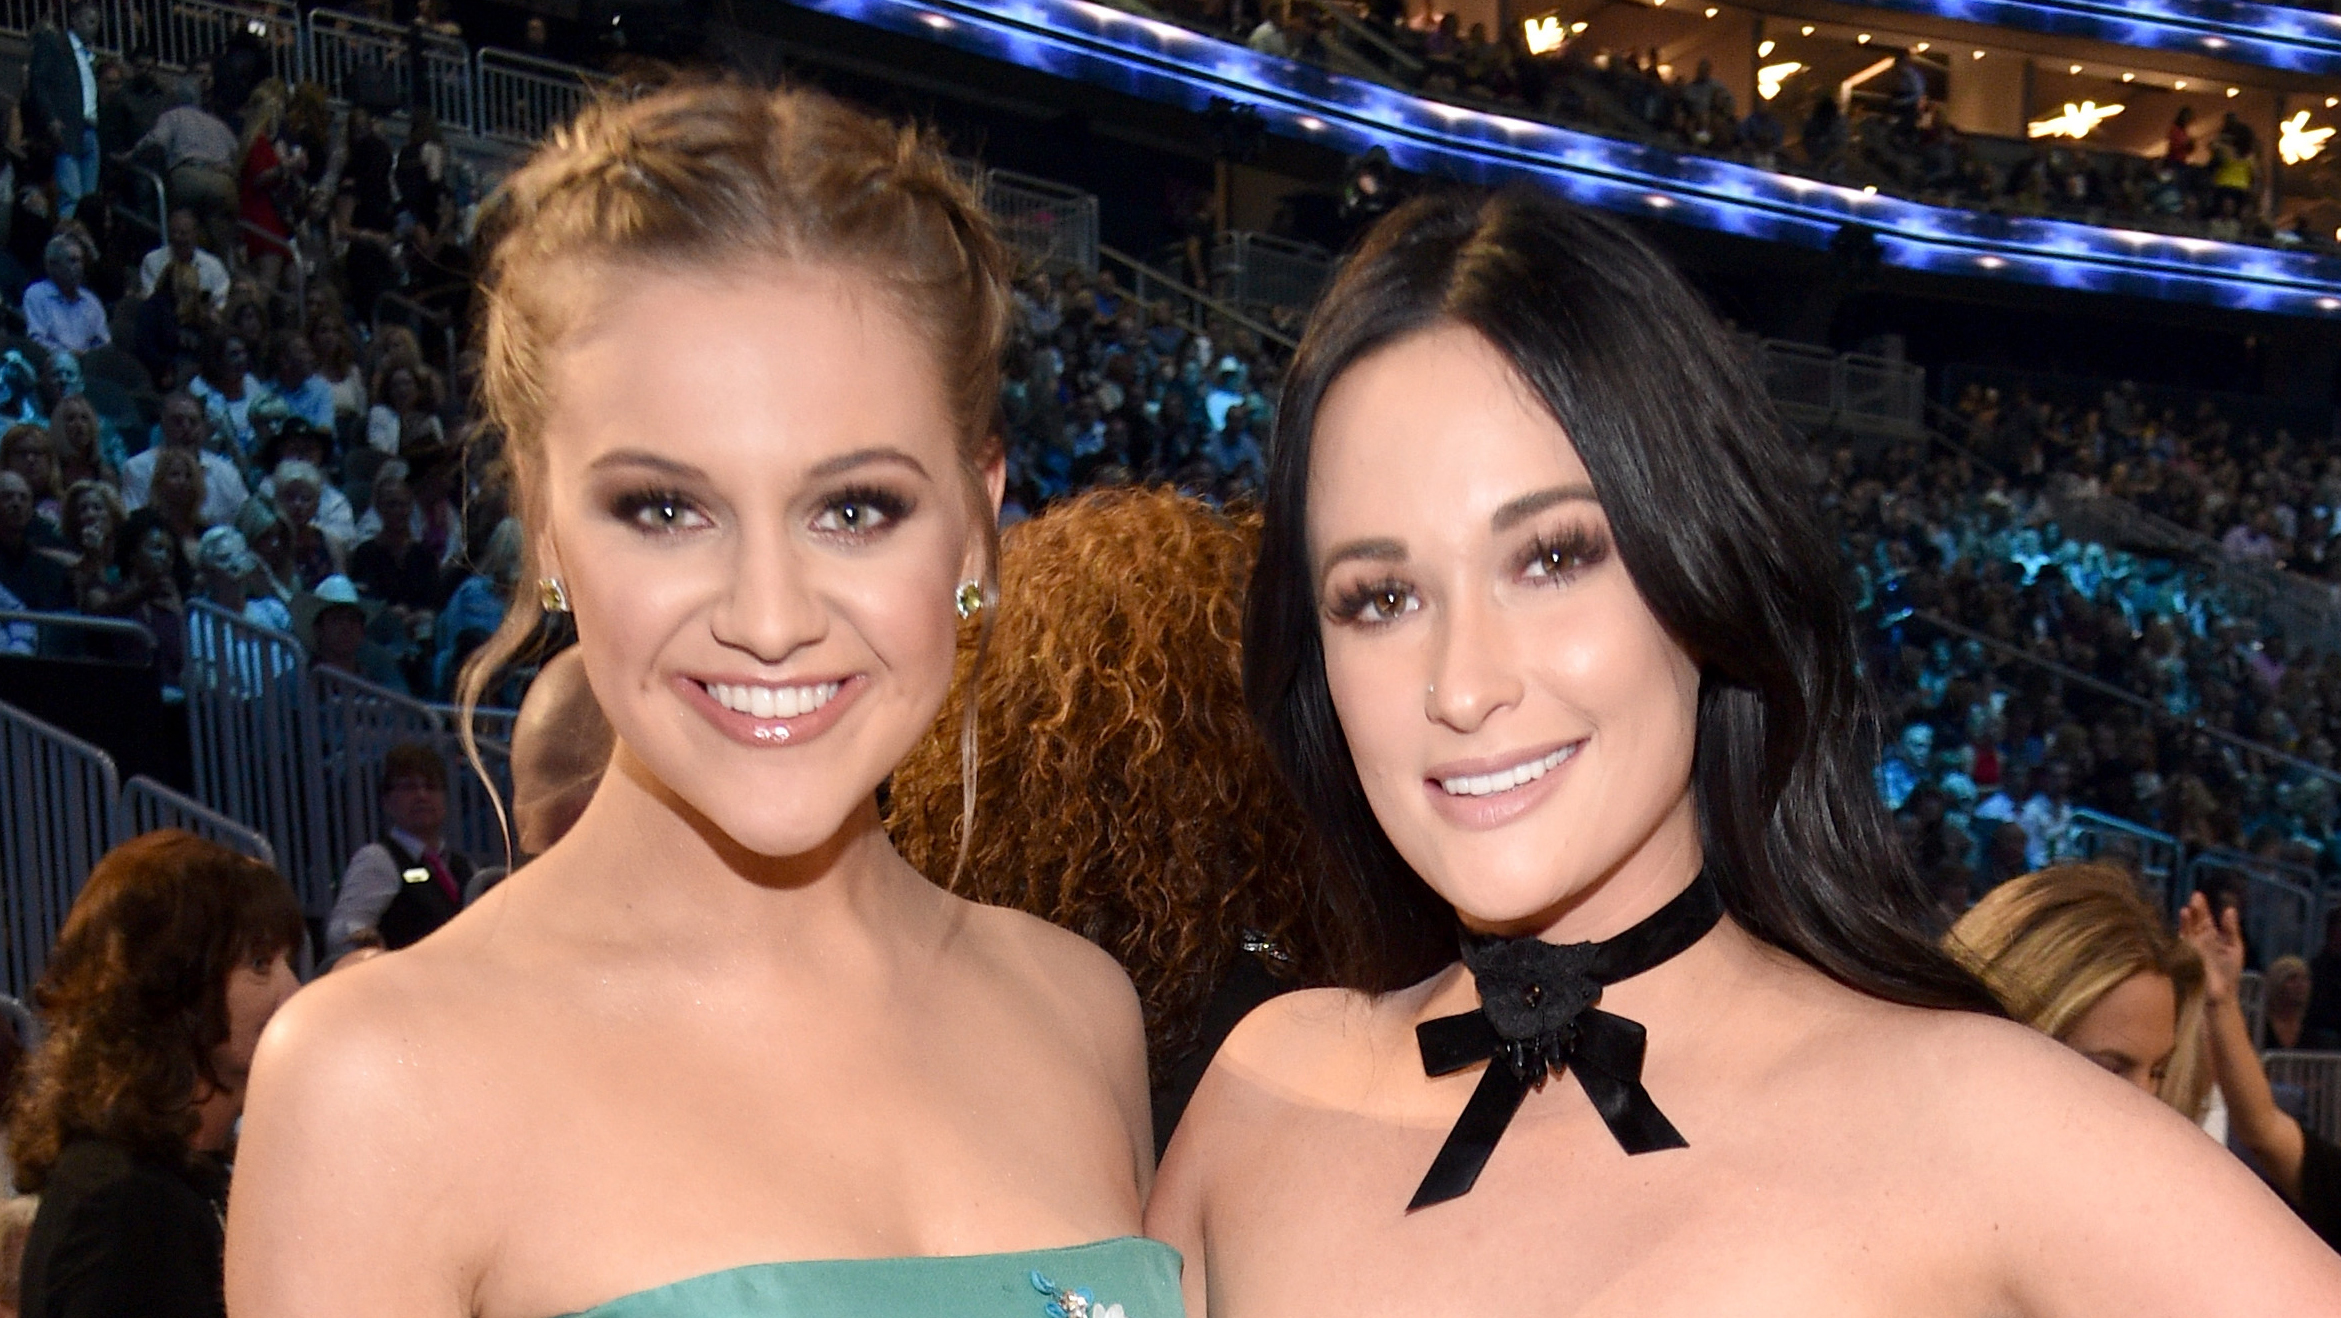 Kacey Musgraves, Kelsea Ballerini slam country radio station airplay rules for not playing women back-to-back